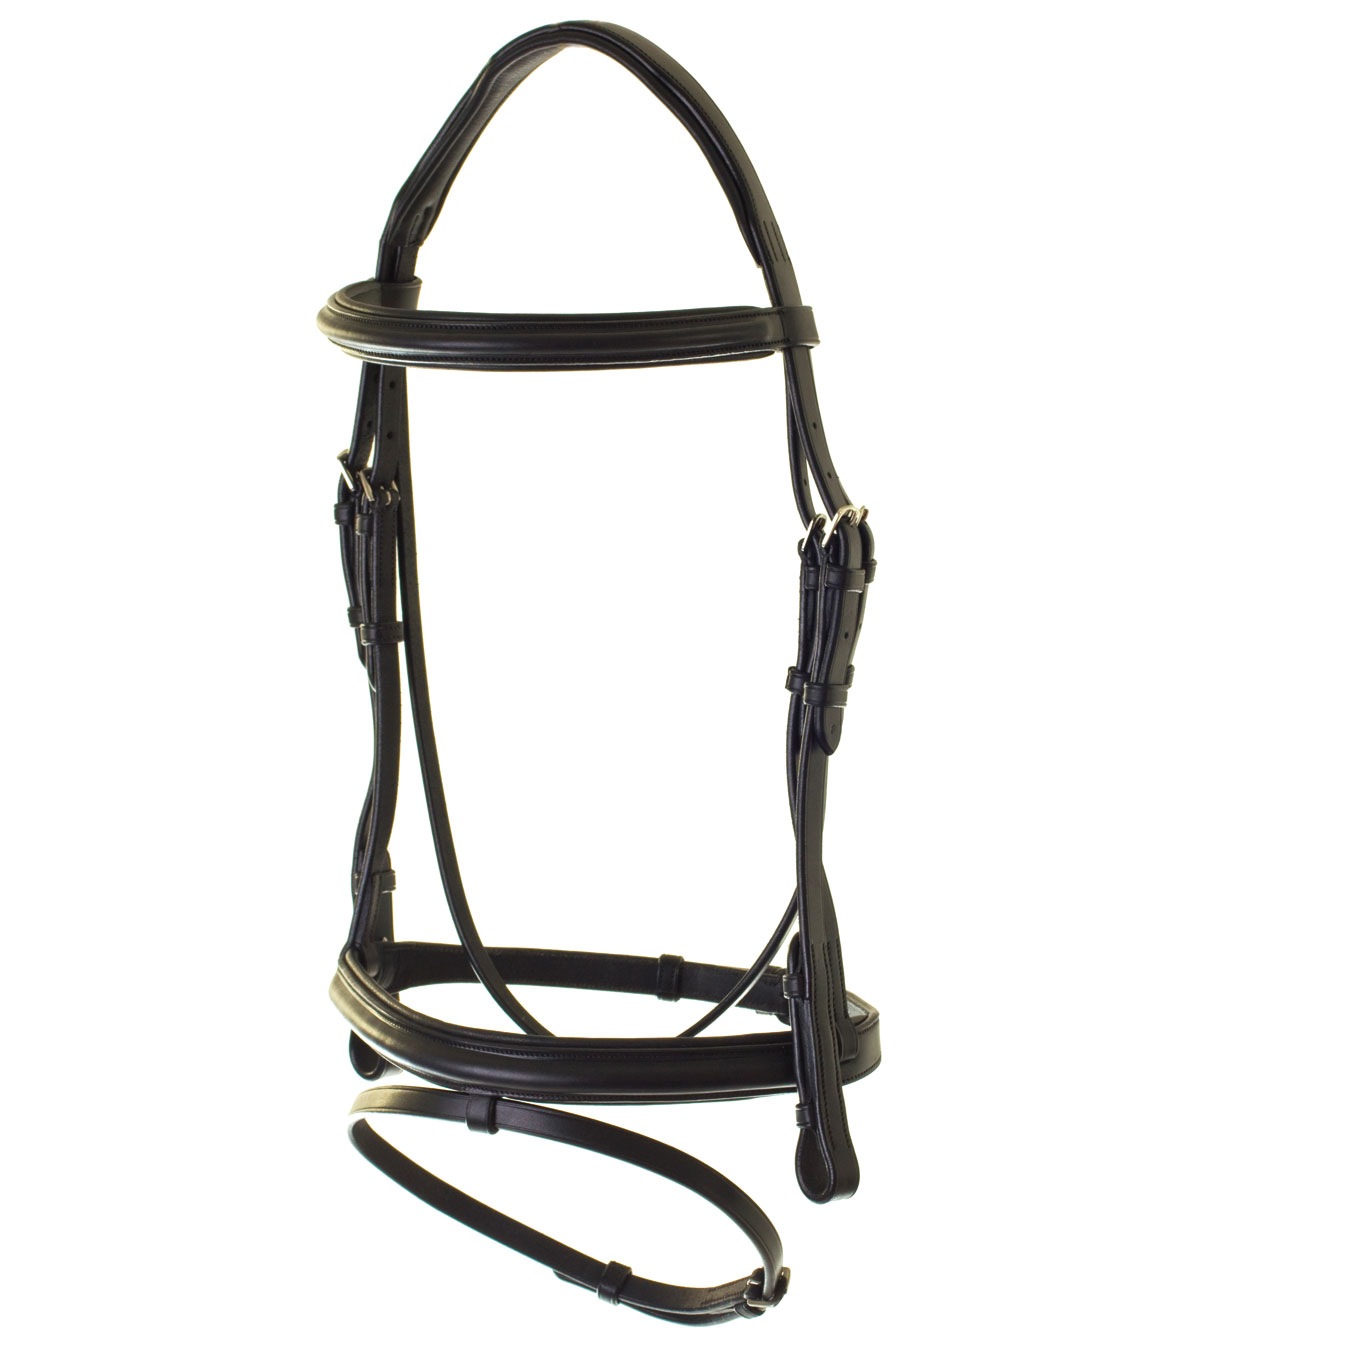 HyCLASS Deluxe Padded Headpiece Flash Bridle